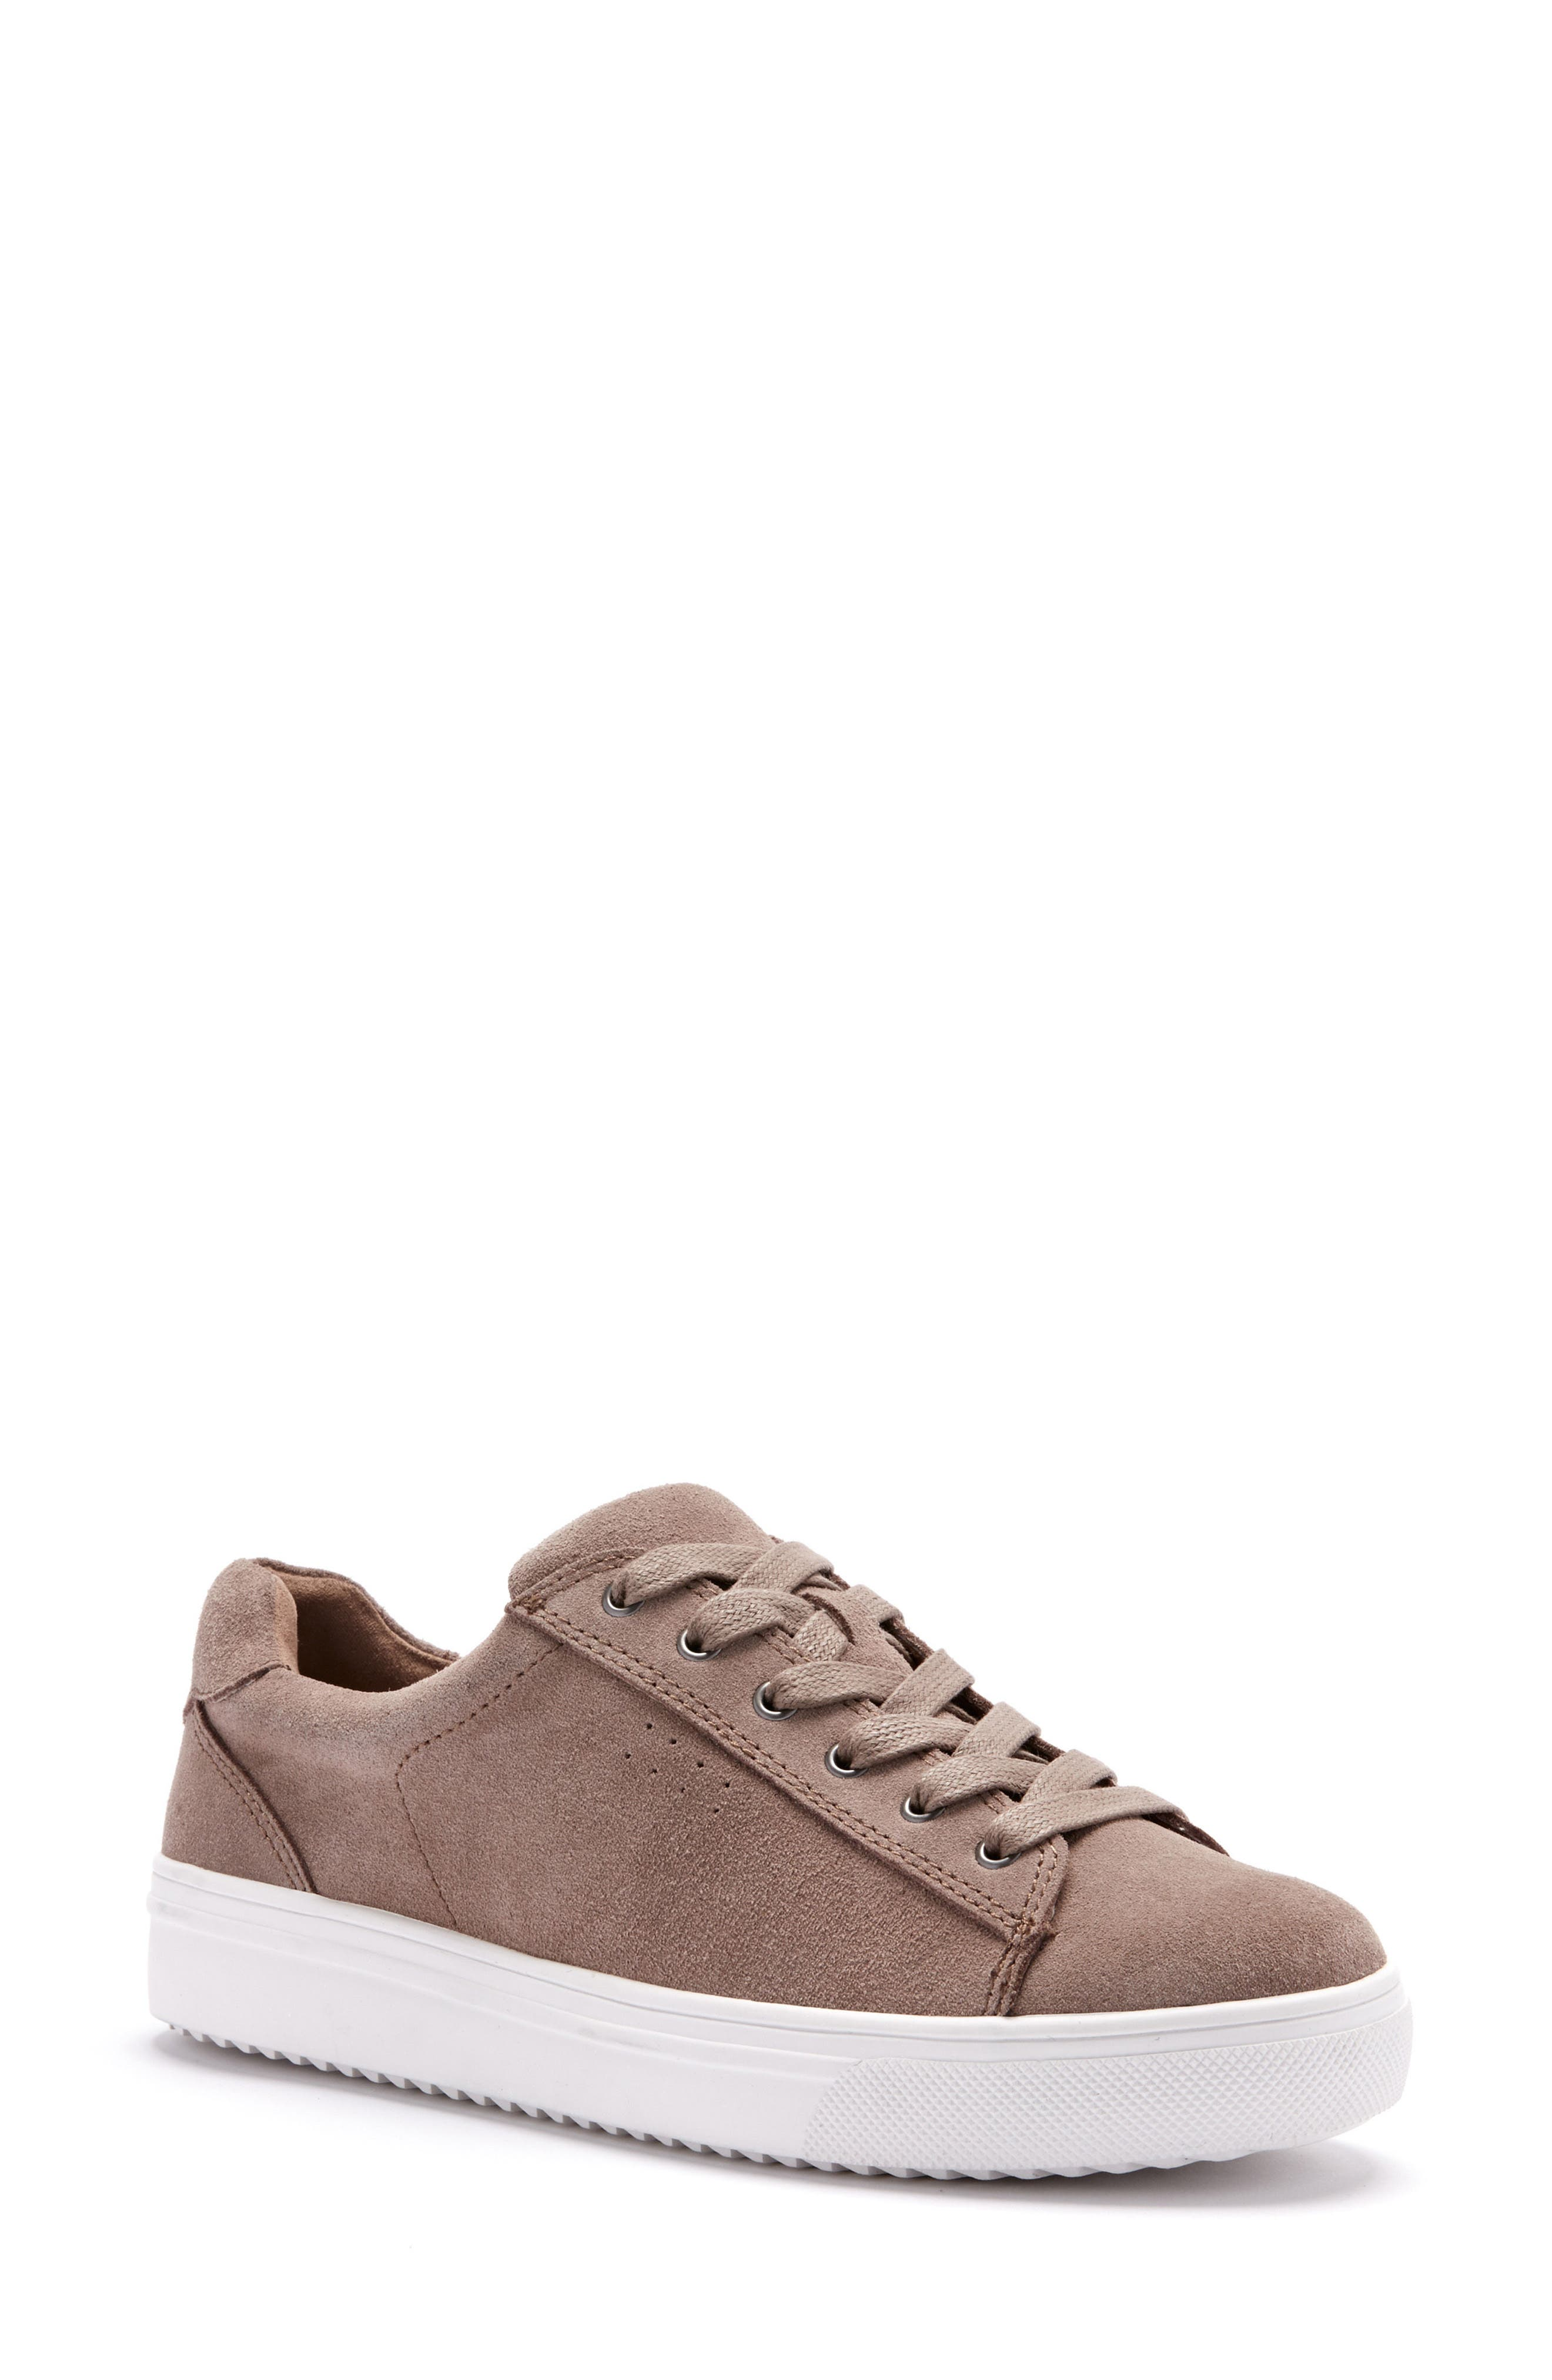 Blondo Jayden Waterproof Sneaker (Women)